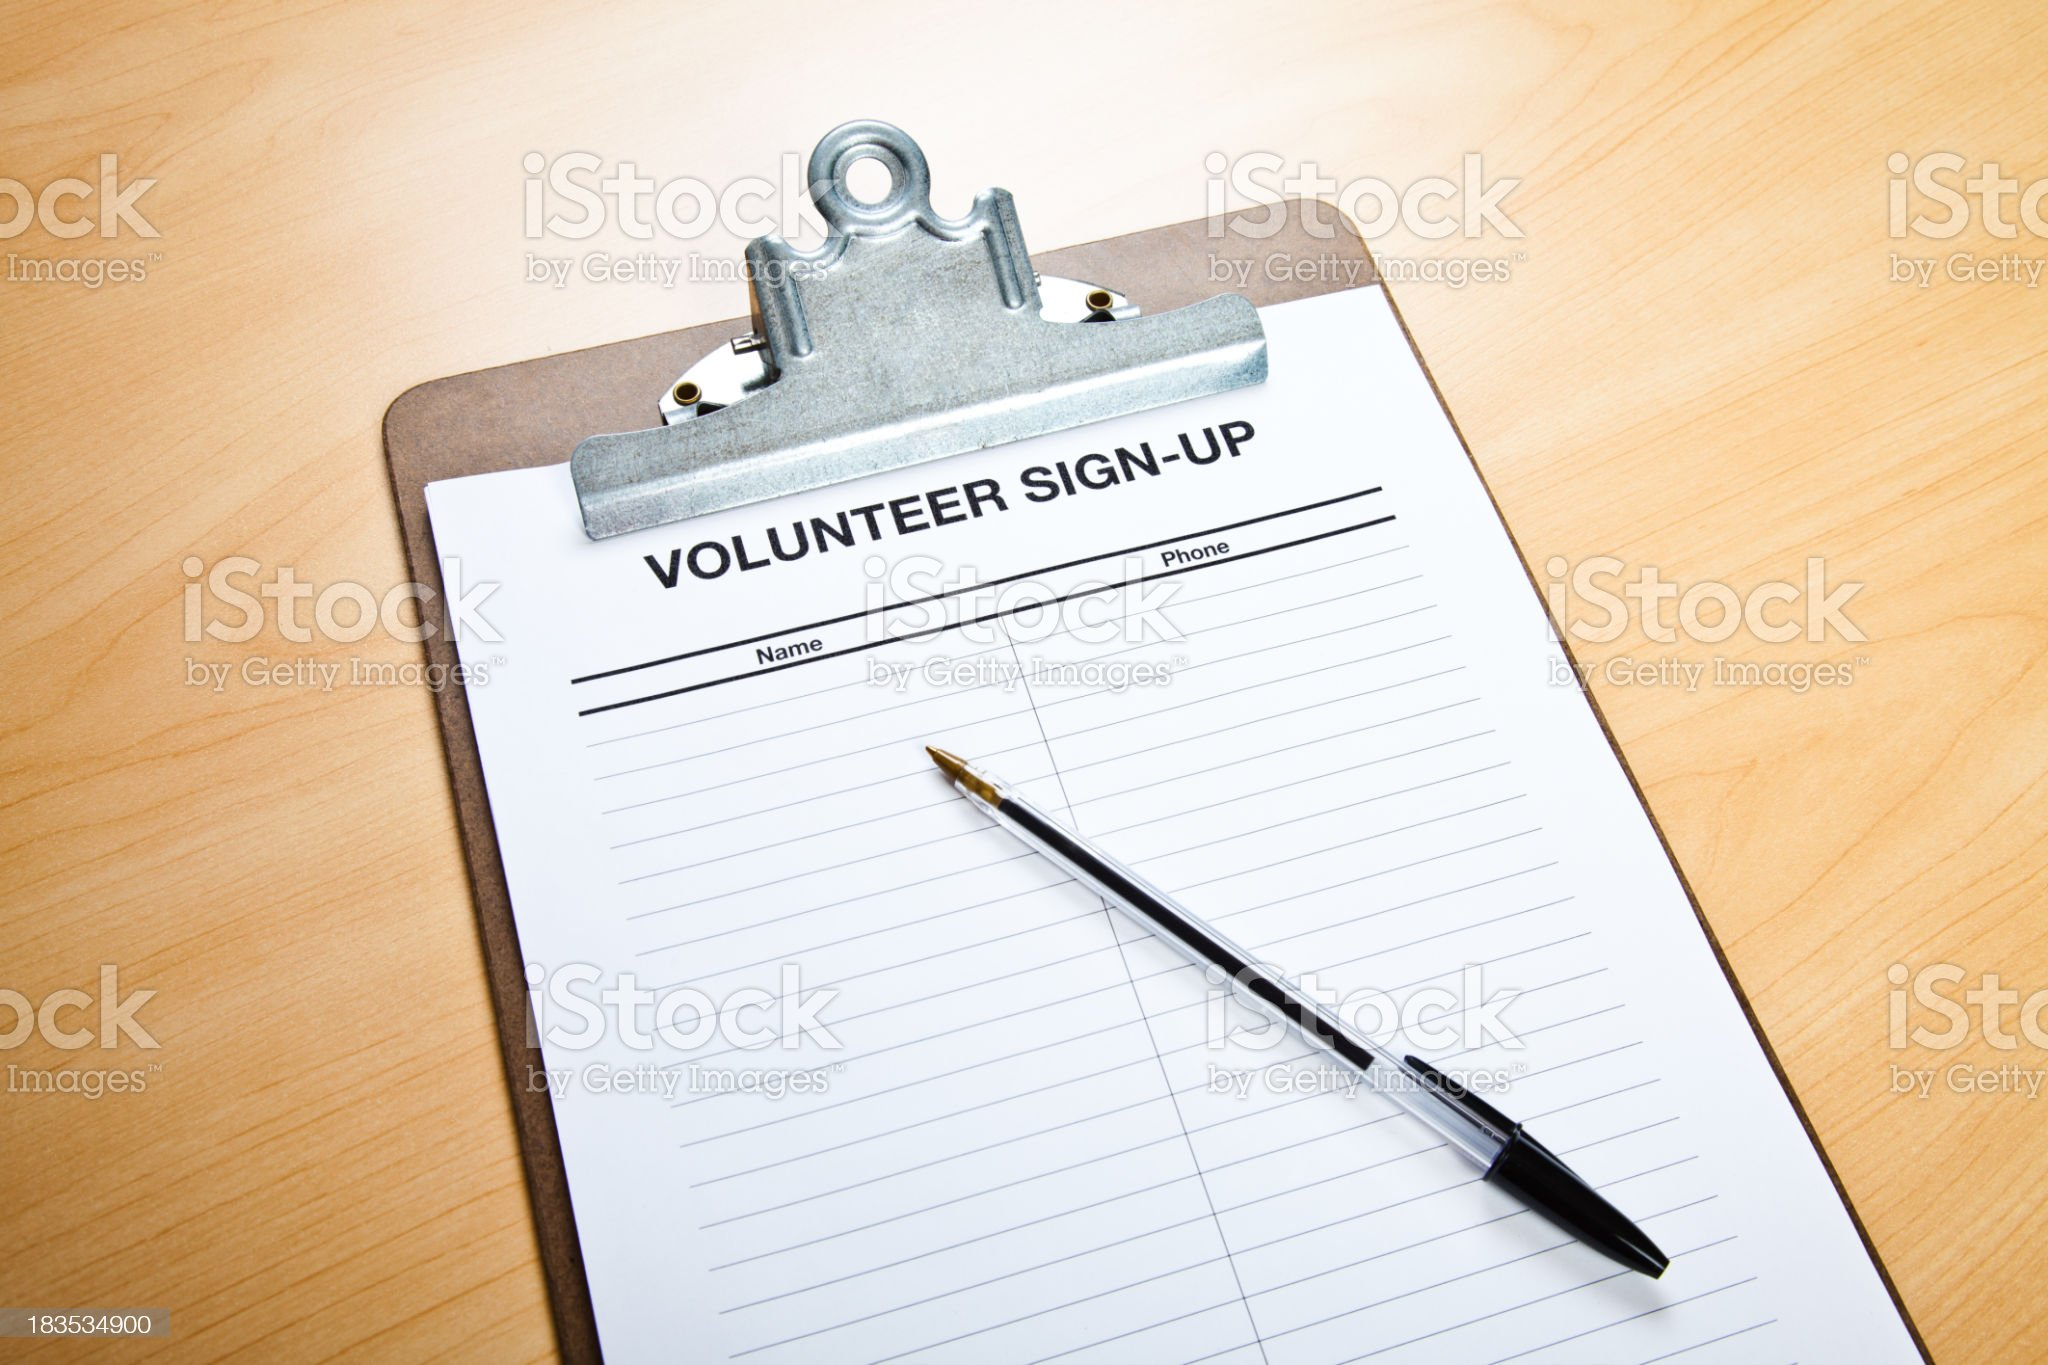 Volunteer Sign-Up royalty-free stock photo